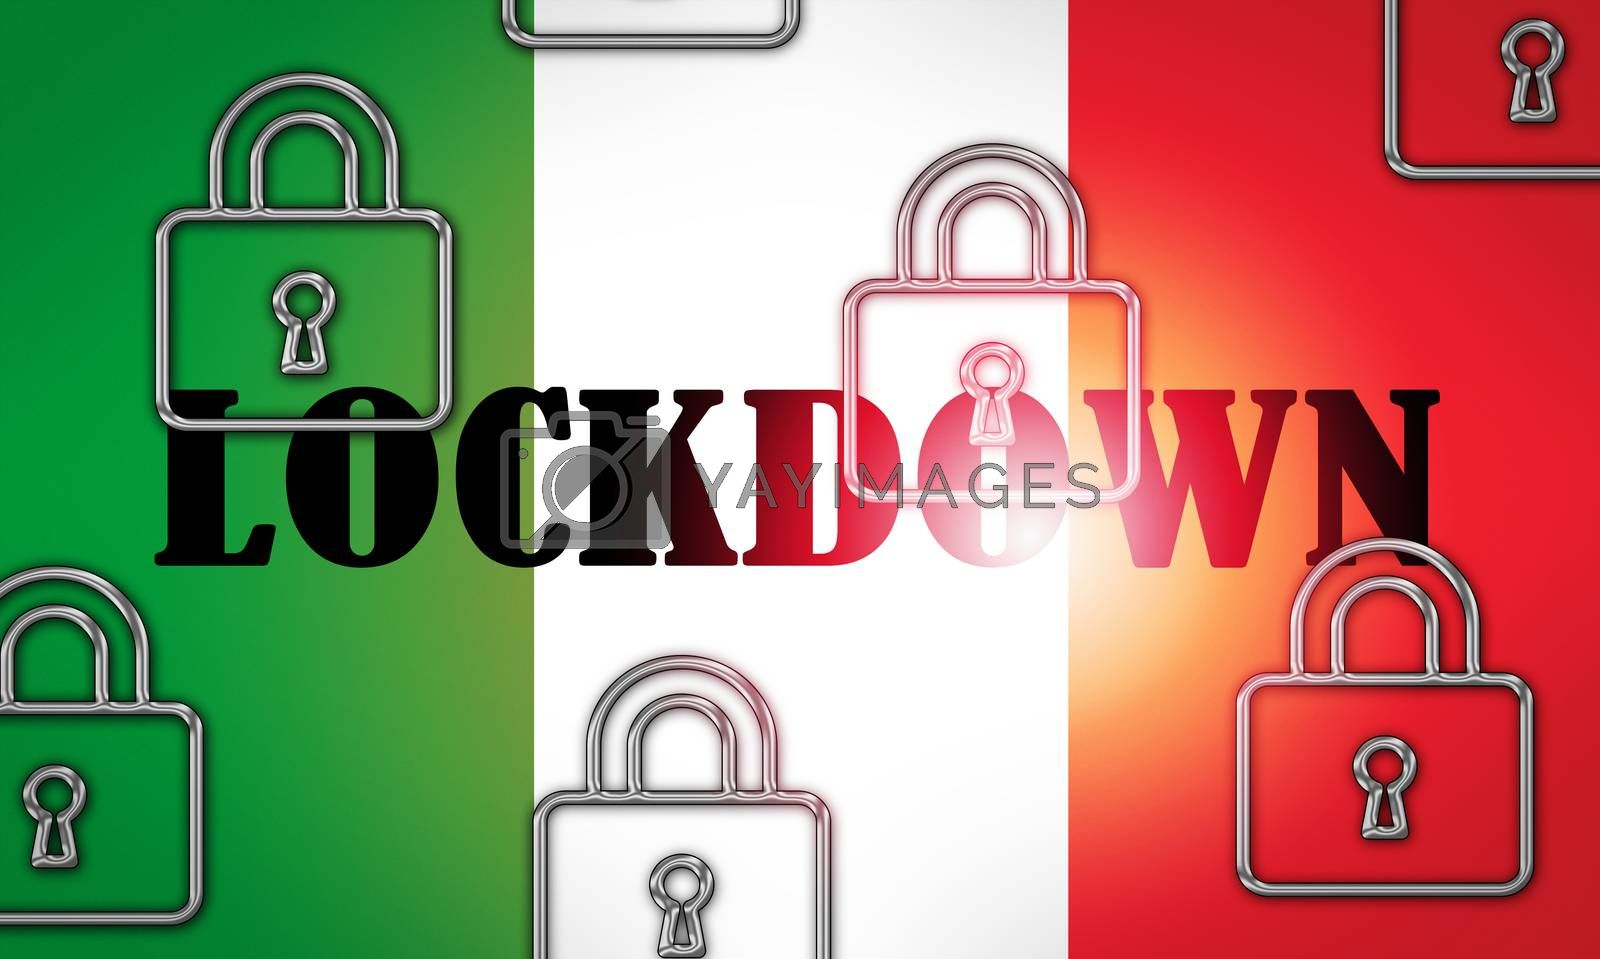 Italy lockdown to stop ncov epidemic or pandemic. Covid 19 Italian ban to isolate disease infection - 3d Illustration